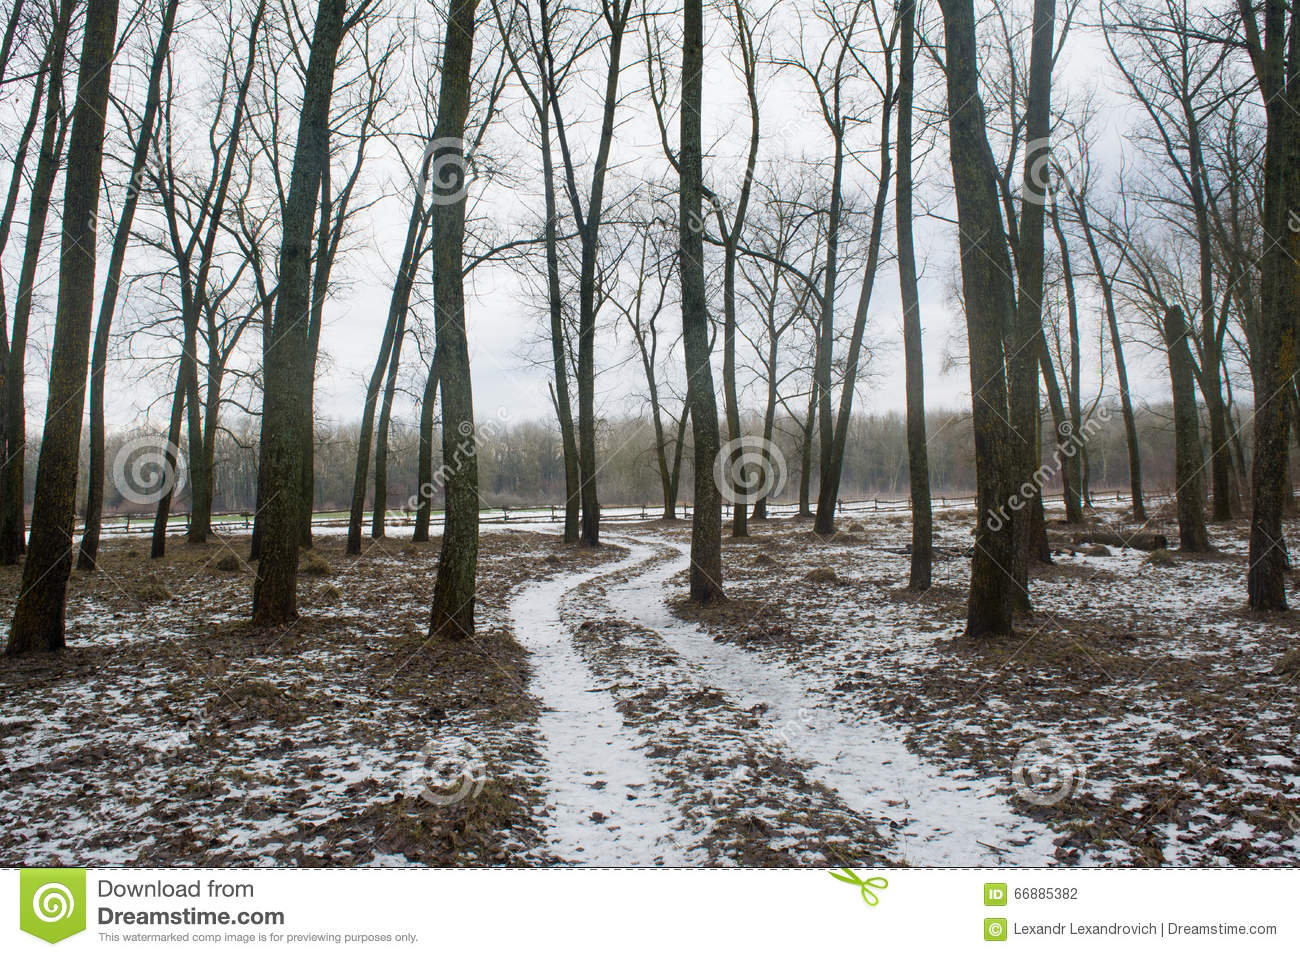 Long road between trees in the winter dark forest during february